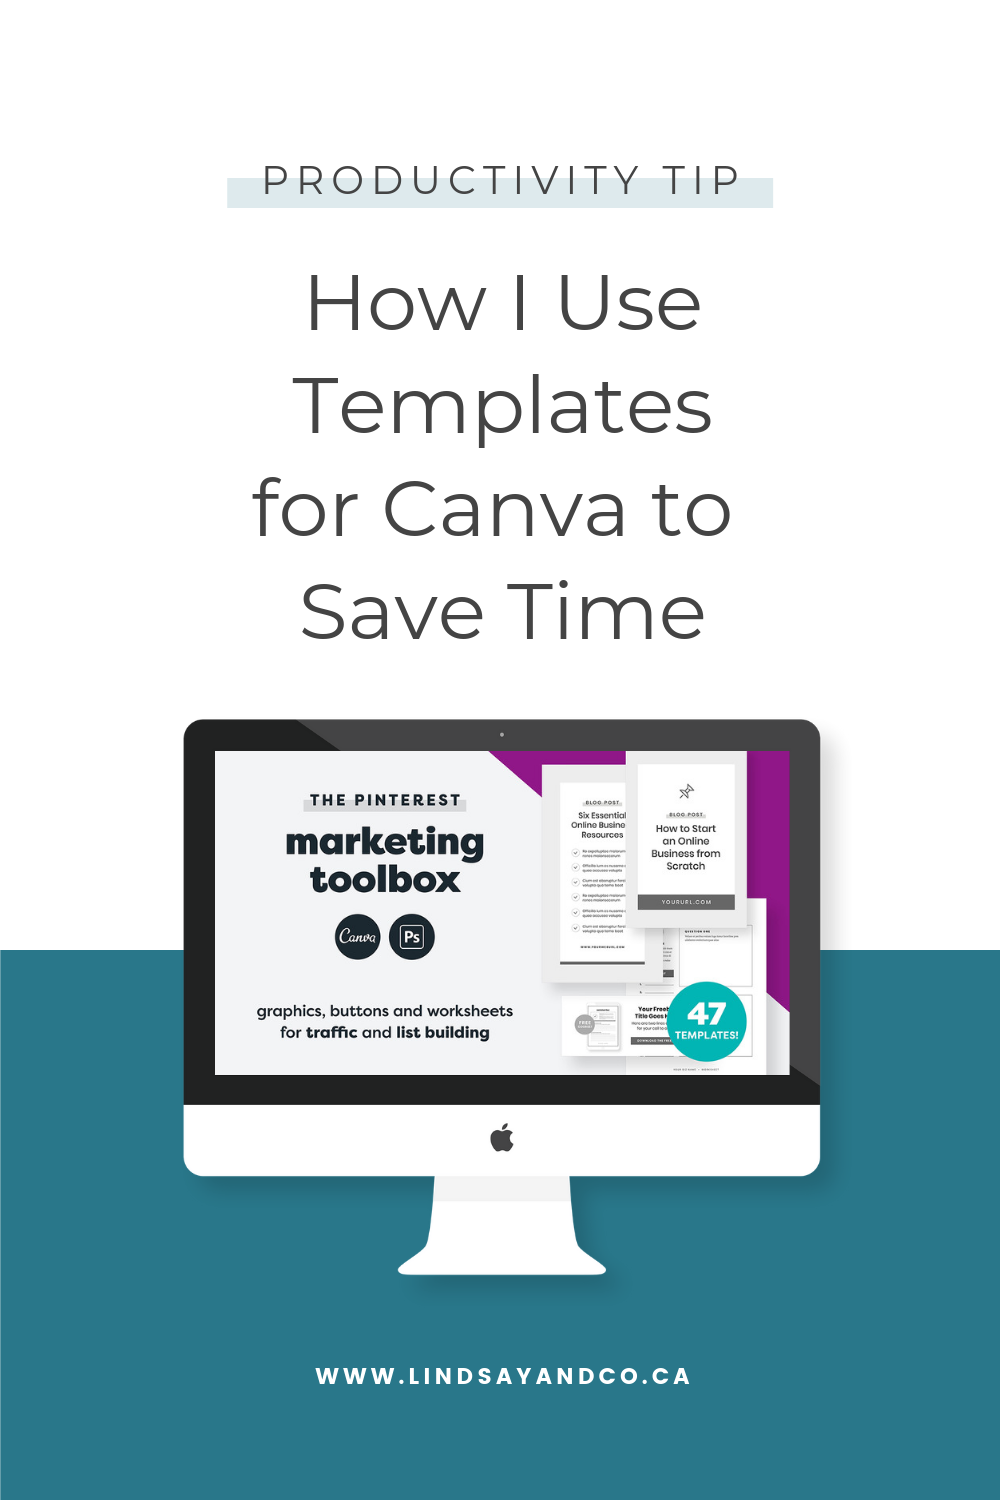 Productivity Tip - How I use templates for Canva to save time